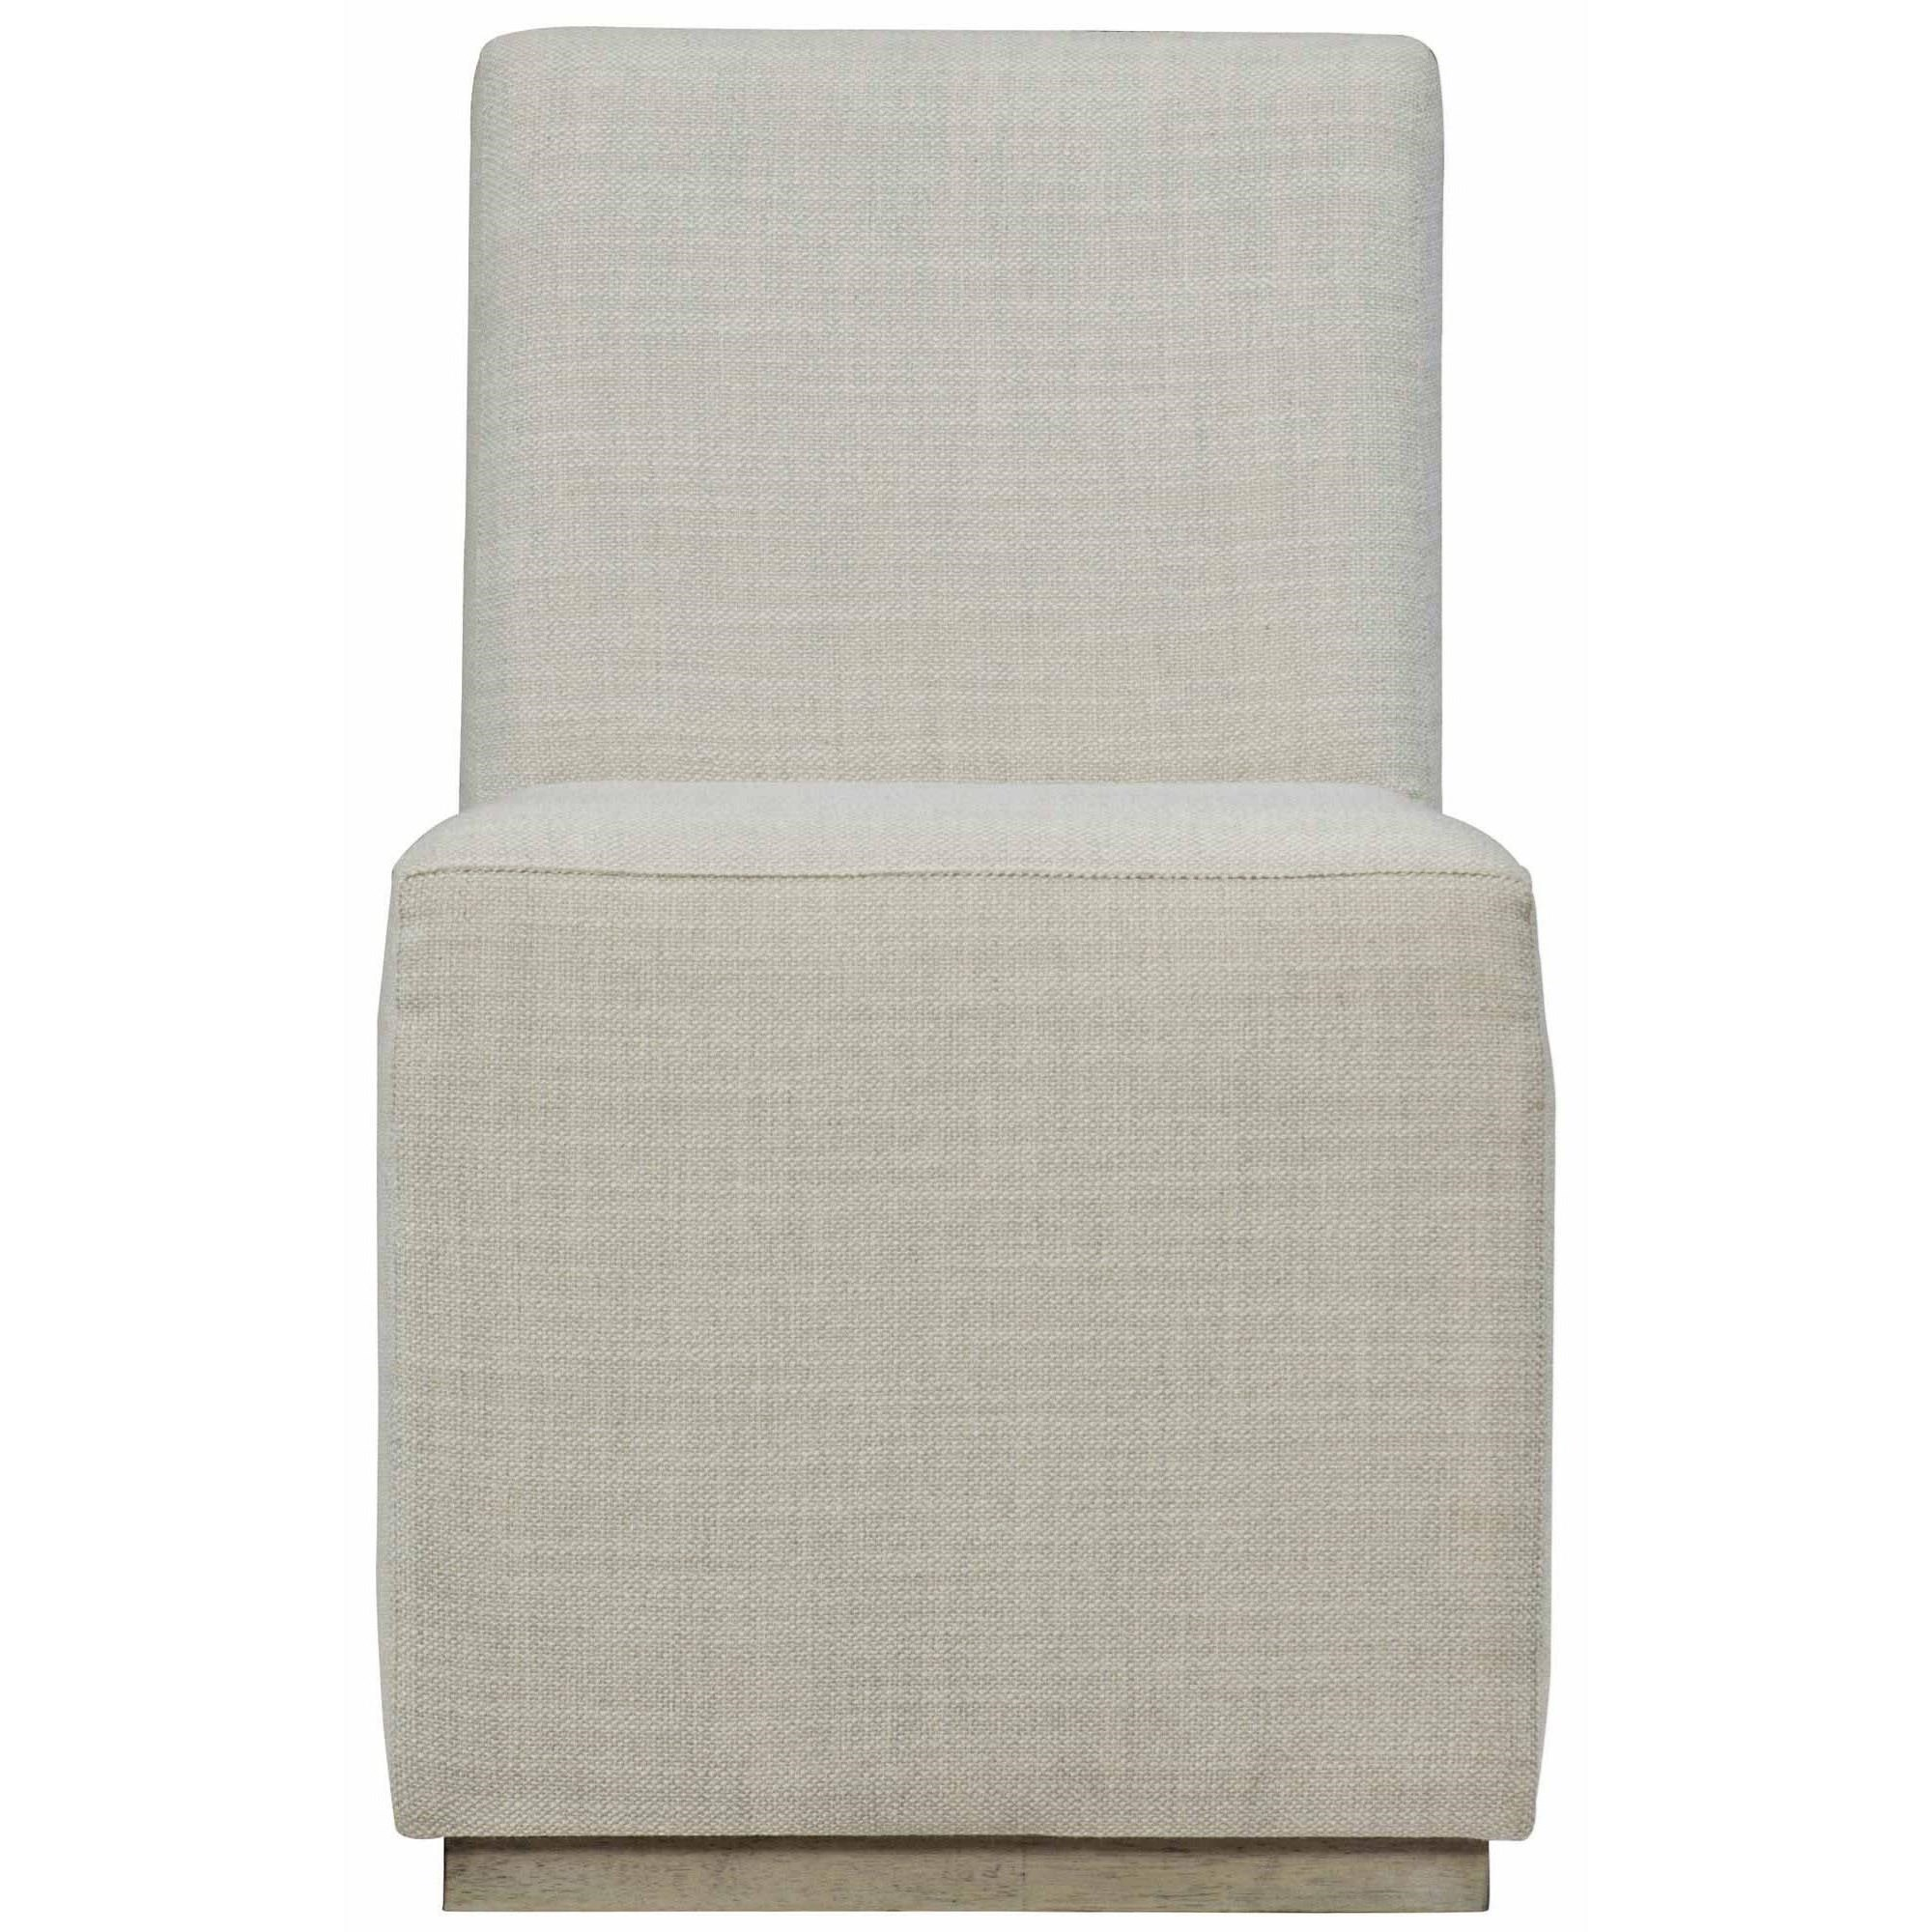 Loft - Highland Park Casey Customizable Uph Dining Side Chair by Bernhardt at Baer's Furniture